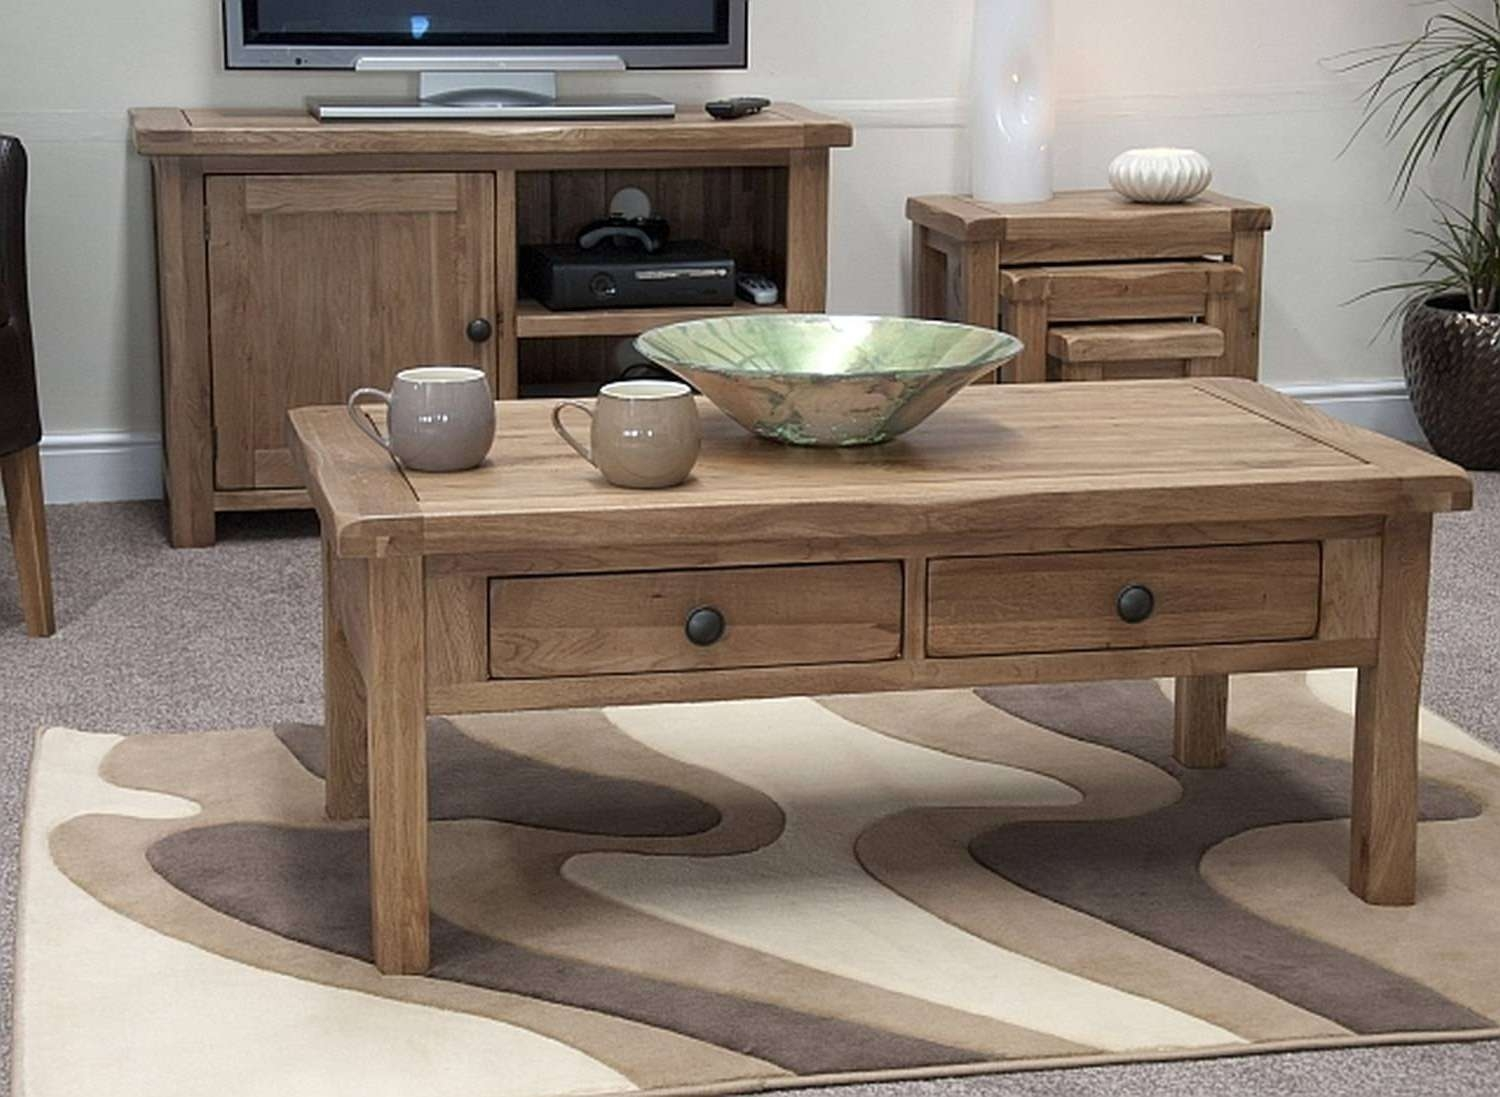 Coffee Table : Tv Stands Stand And Coffee Table Diy Matching Inside Coffee Tables And Tv Stands Matching (View 8 of 15)